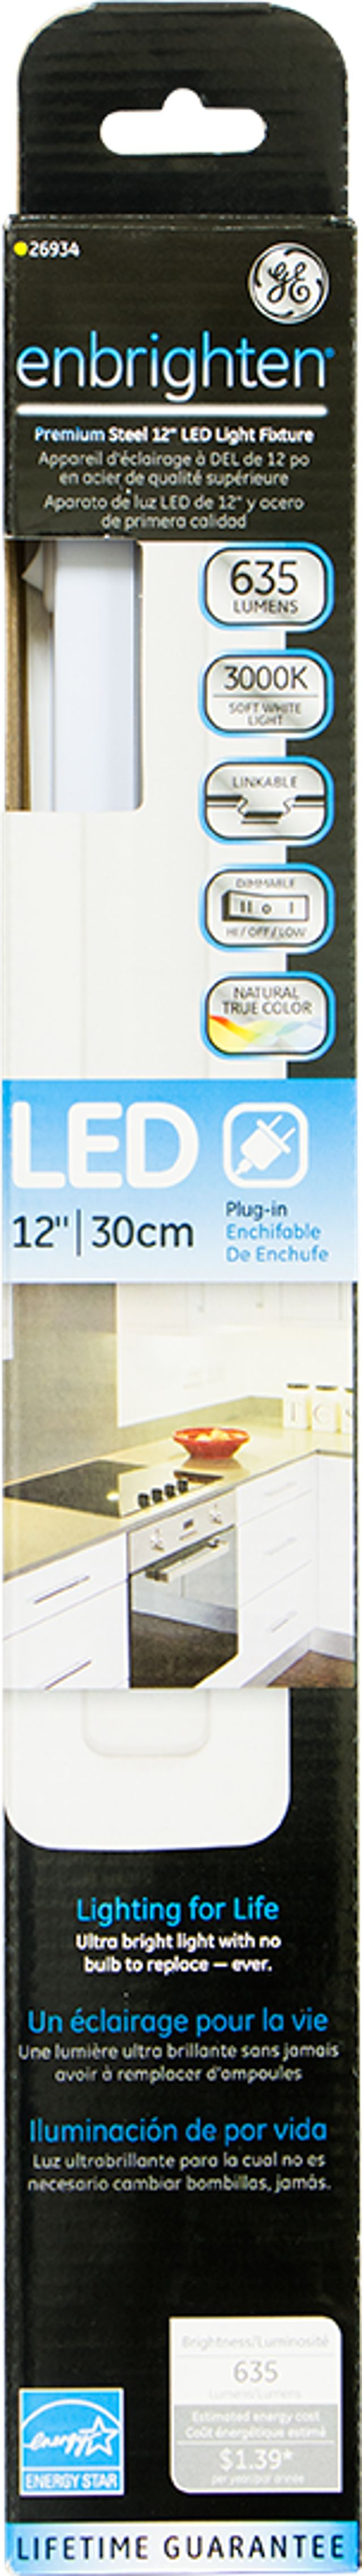 GE Enbrighten Premium LED Plug-In 12-Inch Linkable Light Fixture, 26934 by Jasco Products Company, LLC